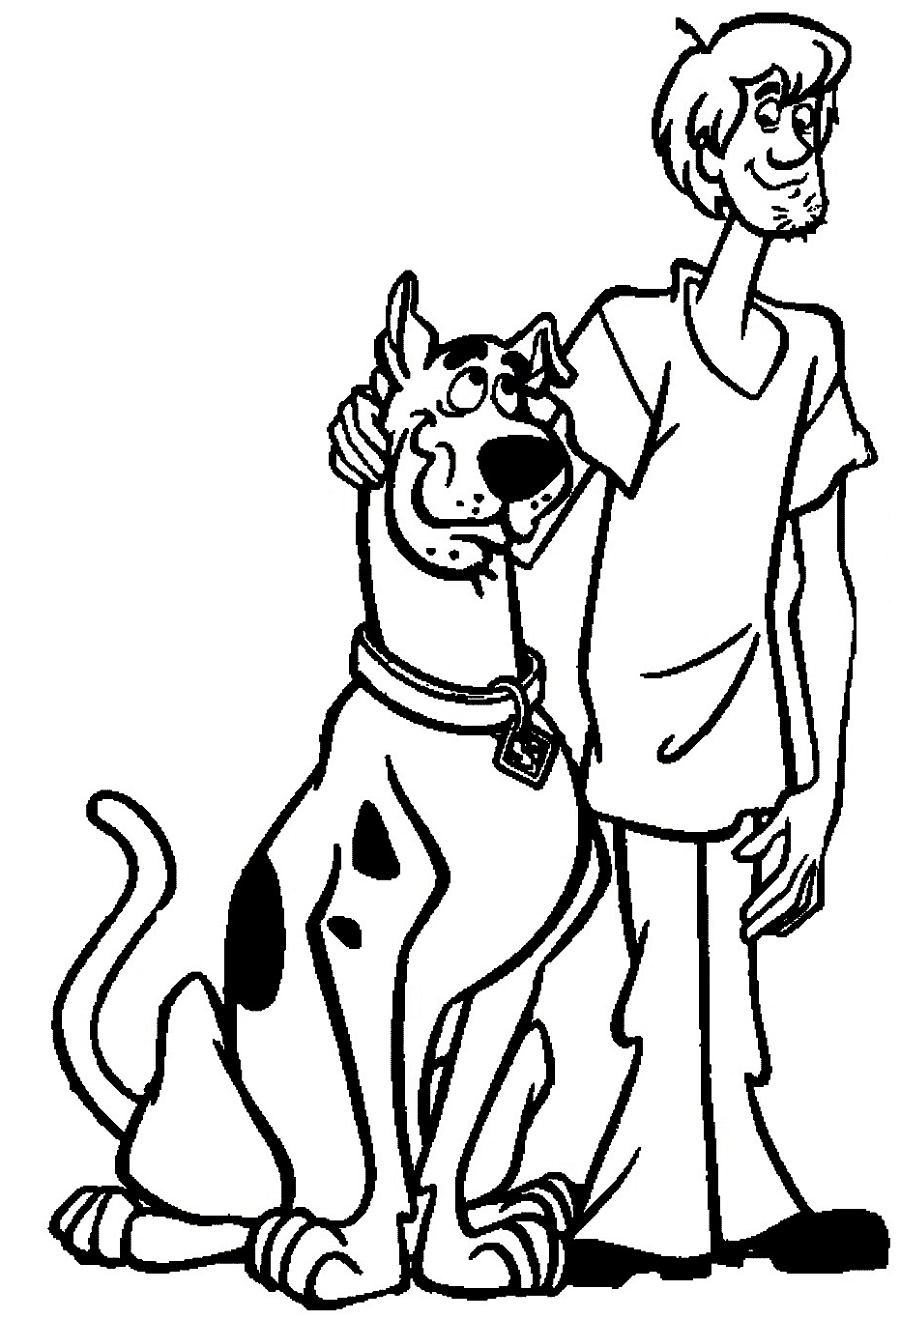 Scooby Doo Coloring Pages And Shaggy